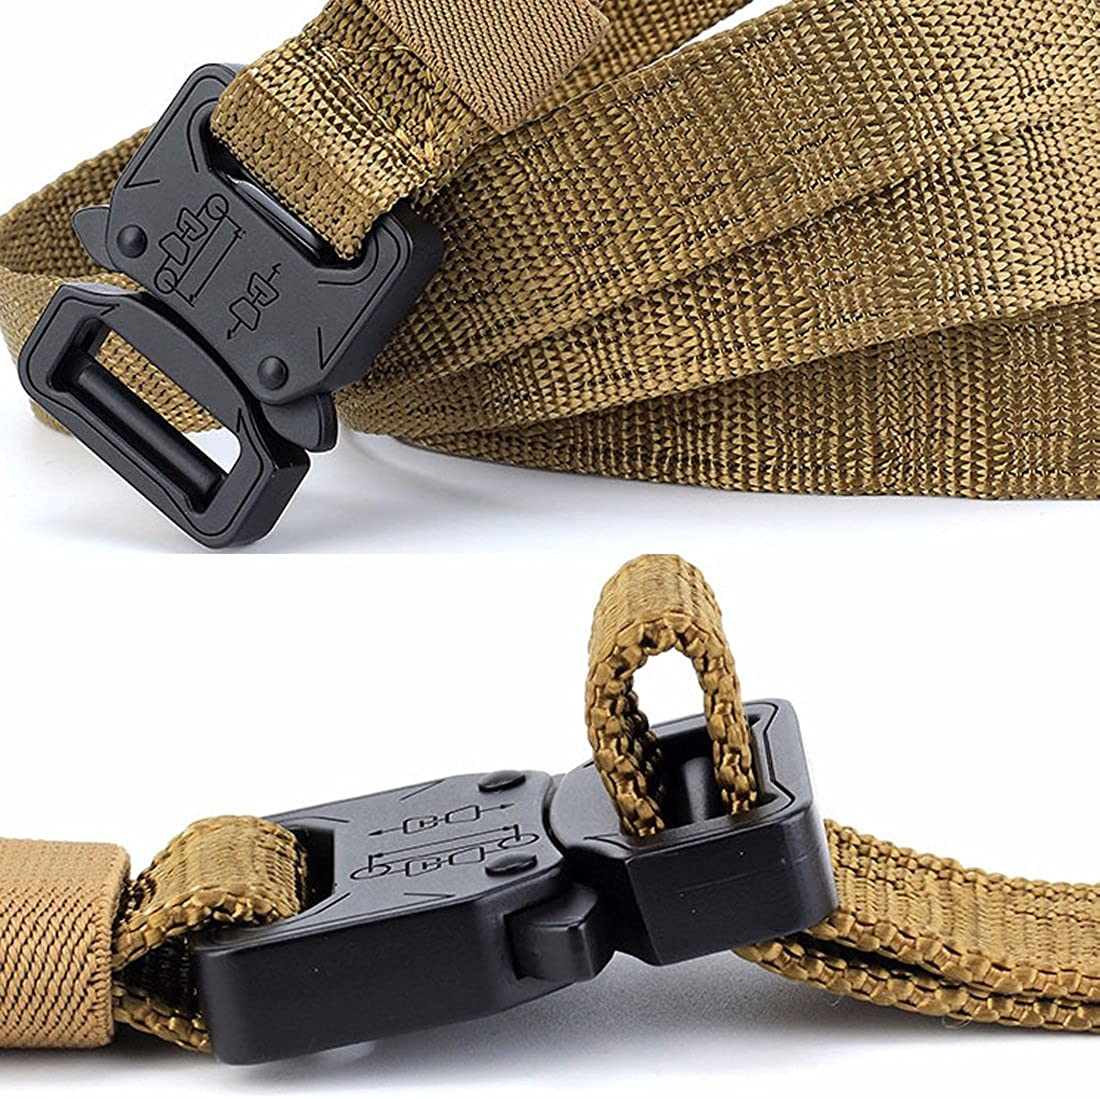 NiceShop16 1 Wide Tactical Nylon Belt Skinny Military Heavy Duty with Quick-Release Metal Buckle